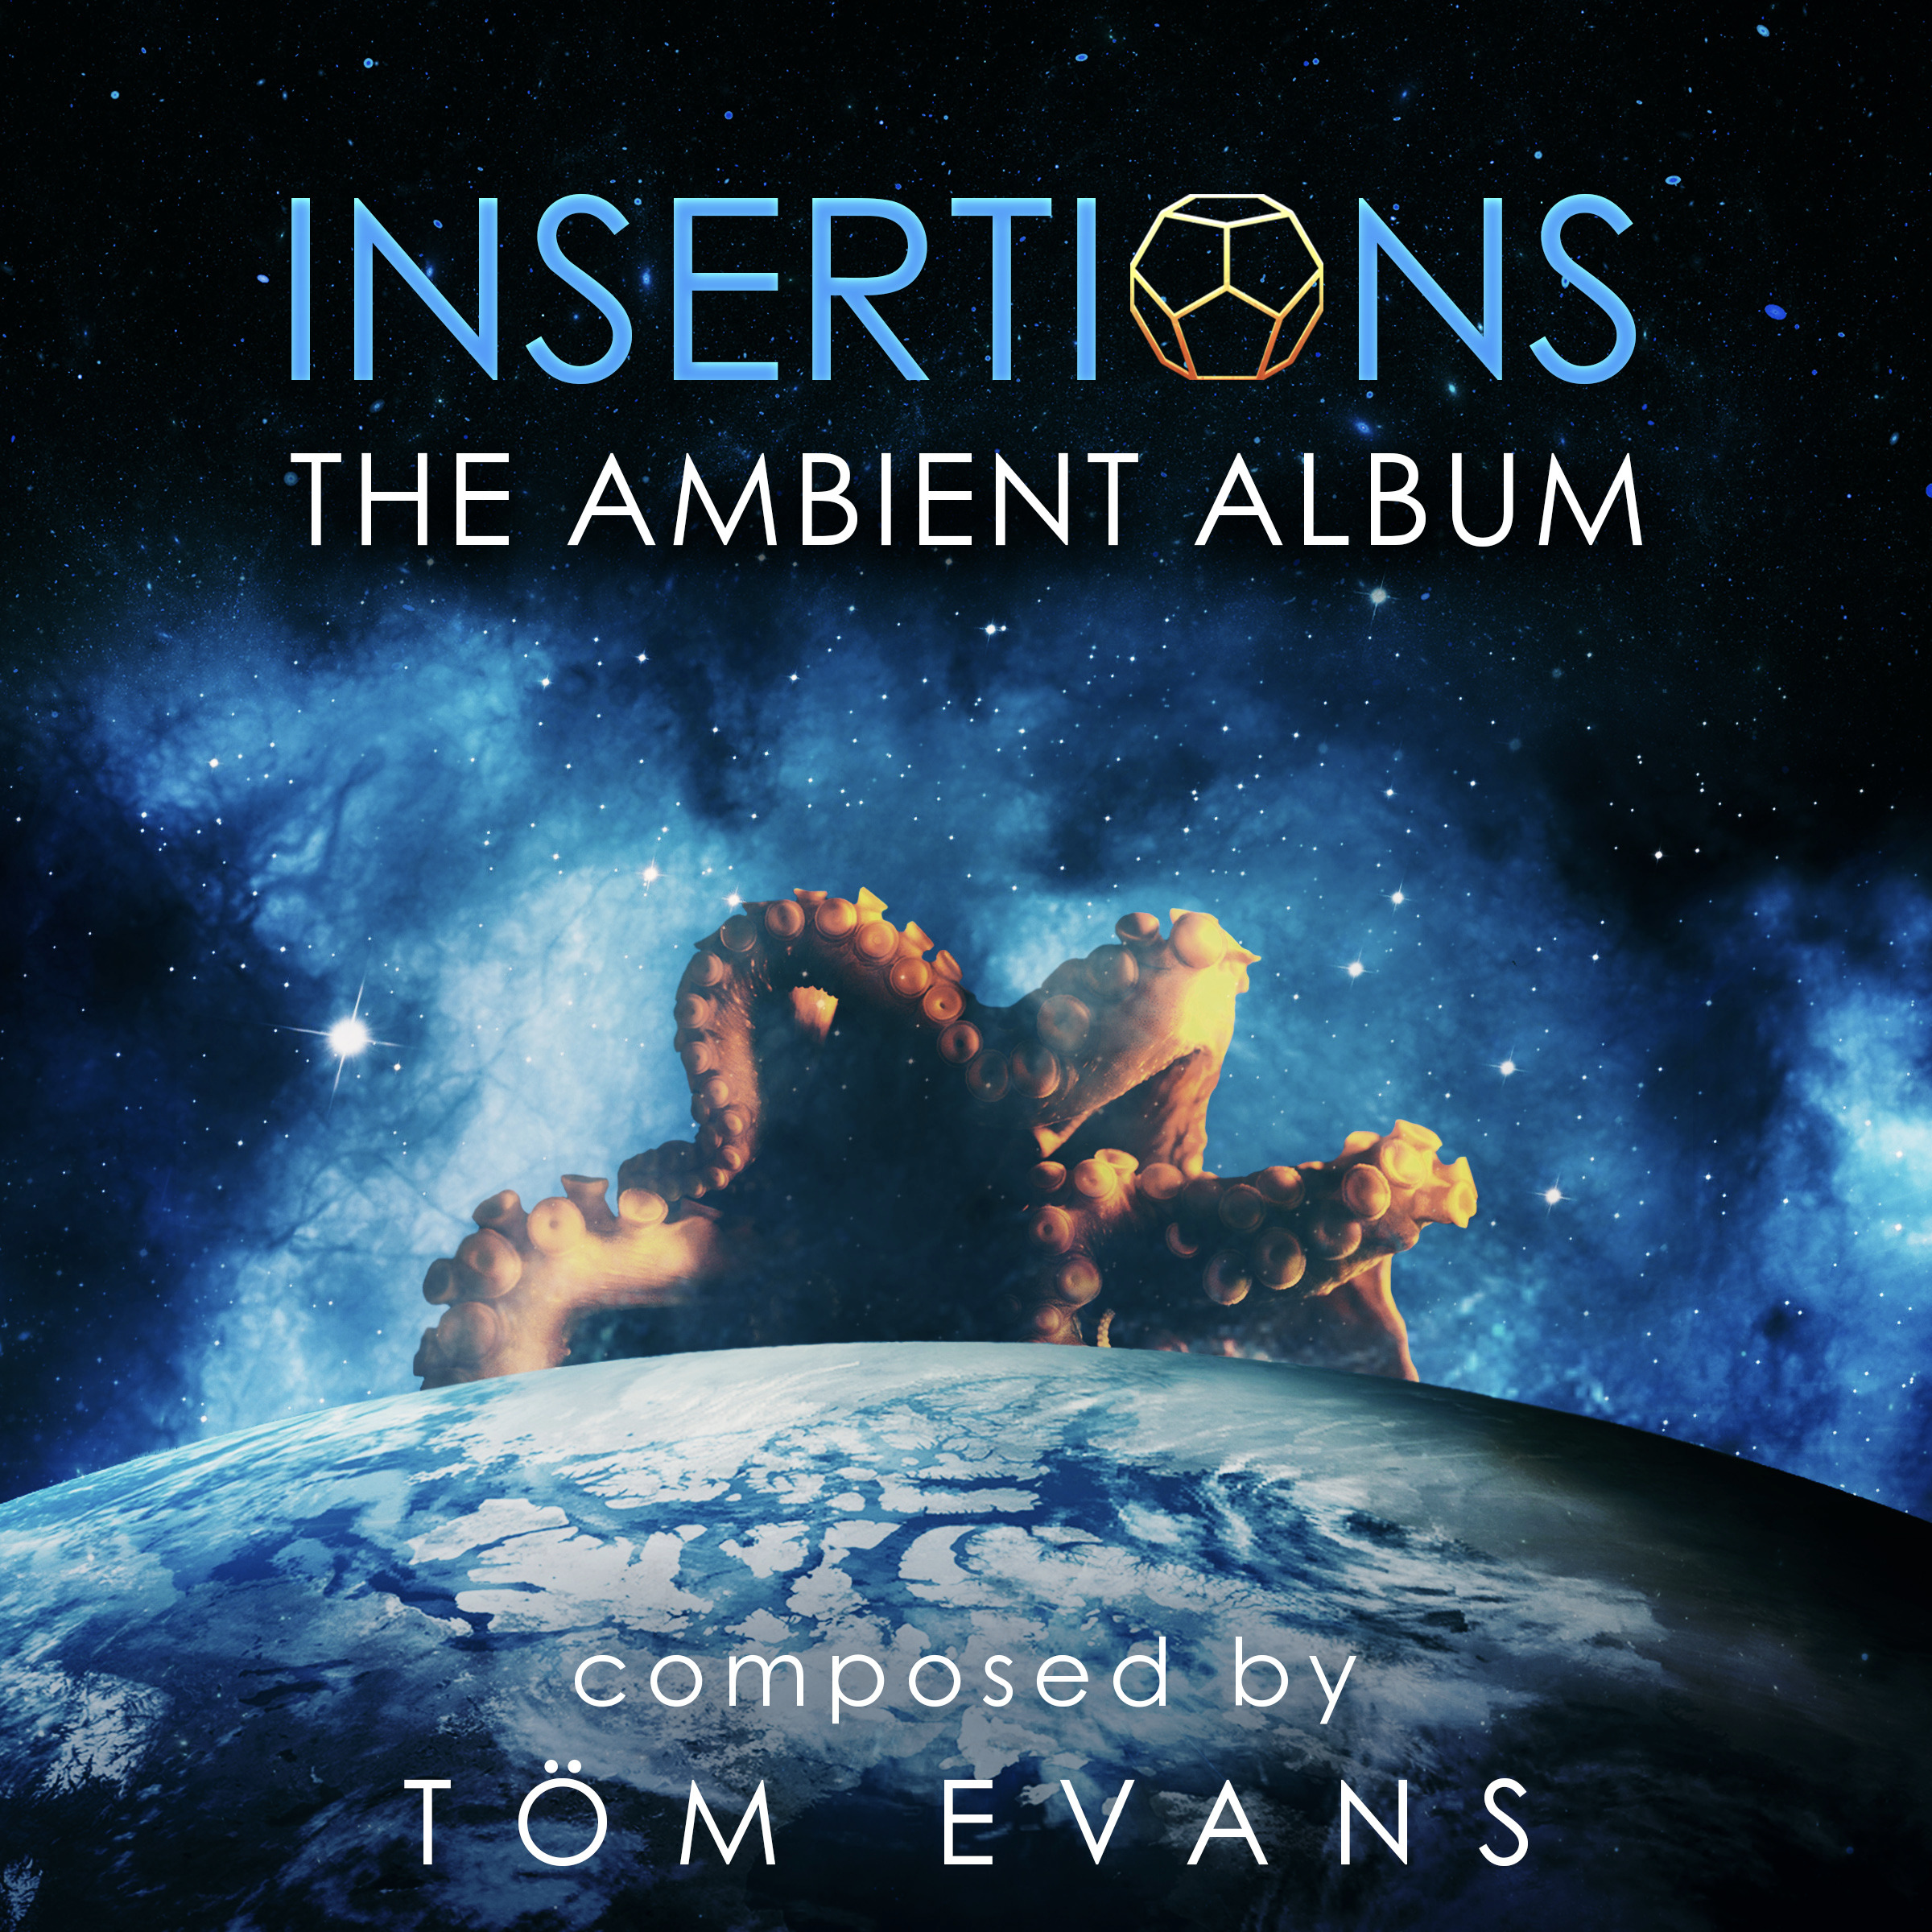 Insertions : The Ambient Album